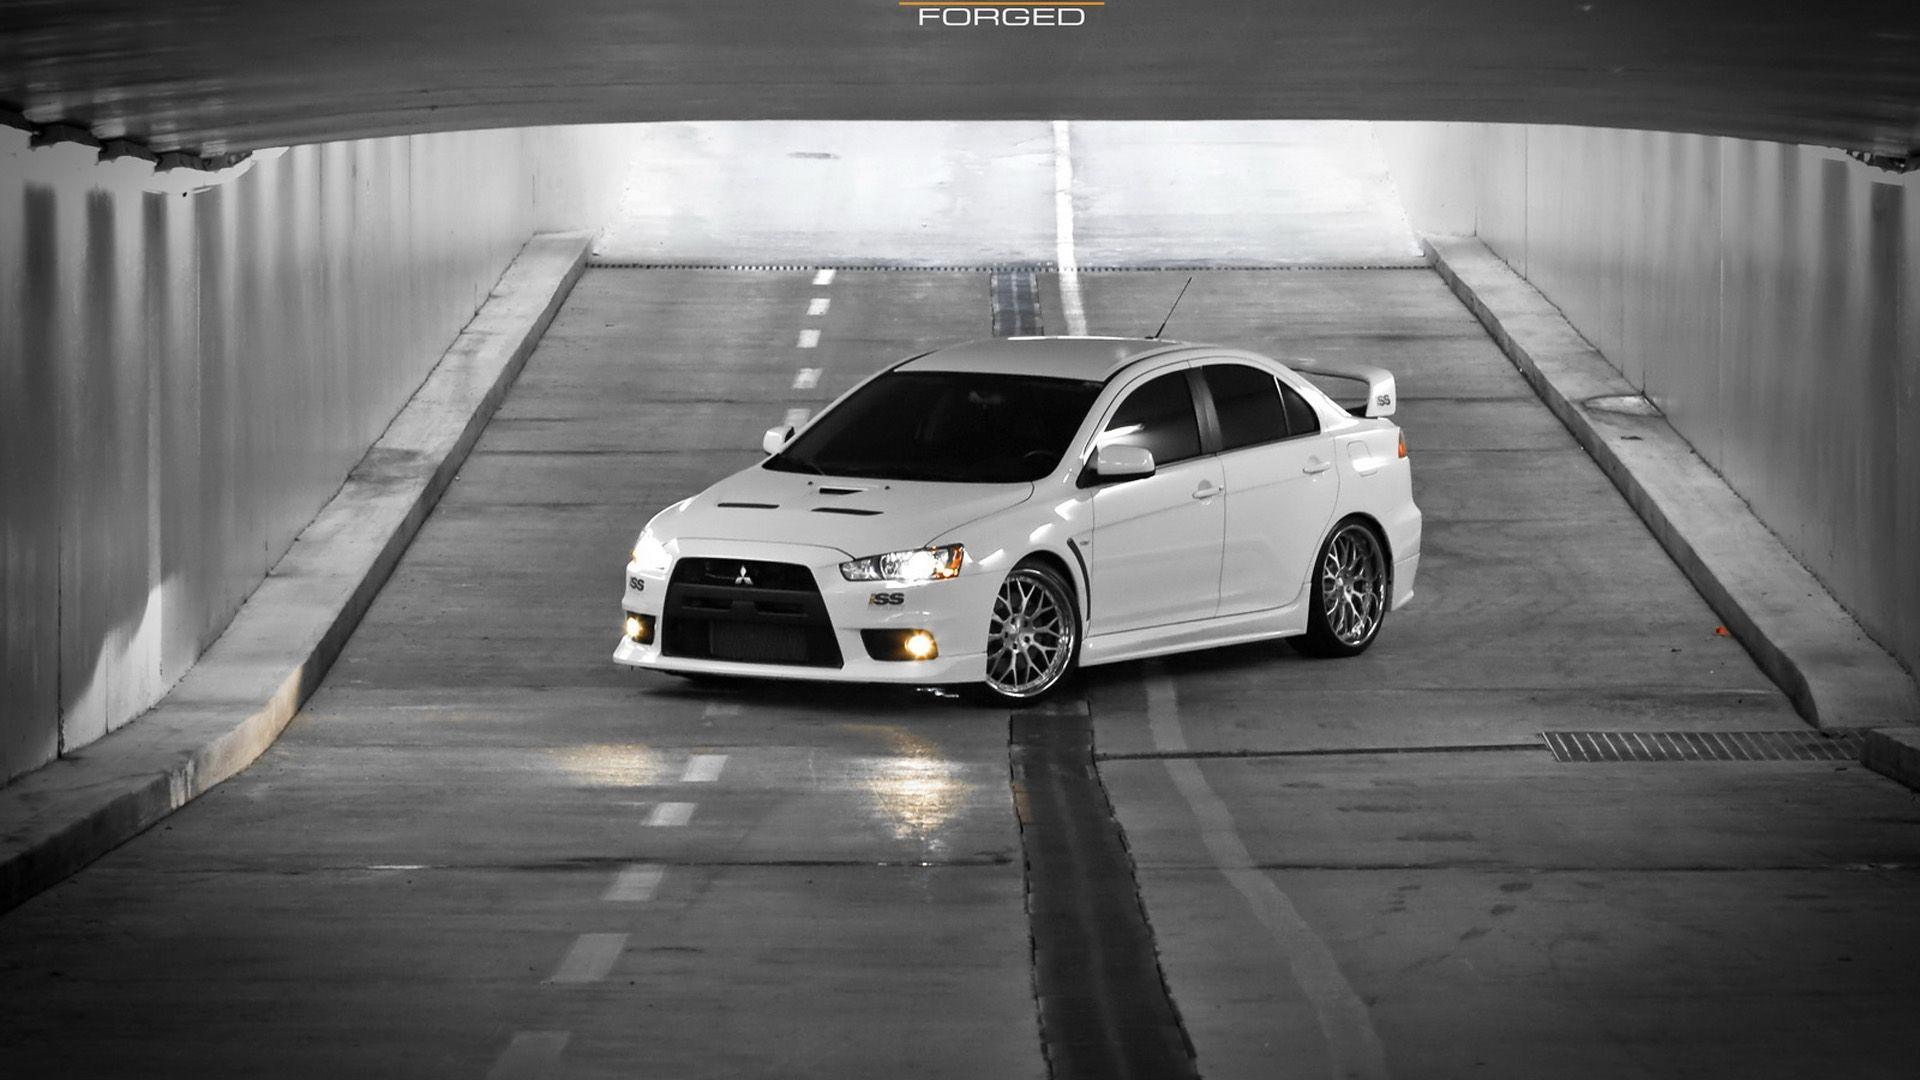 1920x1080 Mitsubishi Lancer Evo X Wallpaper